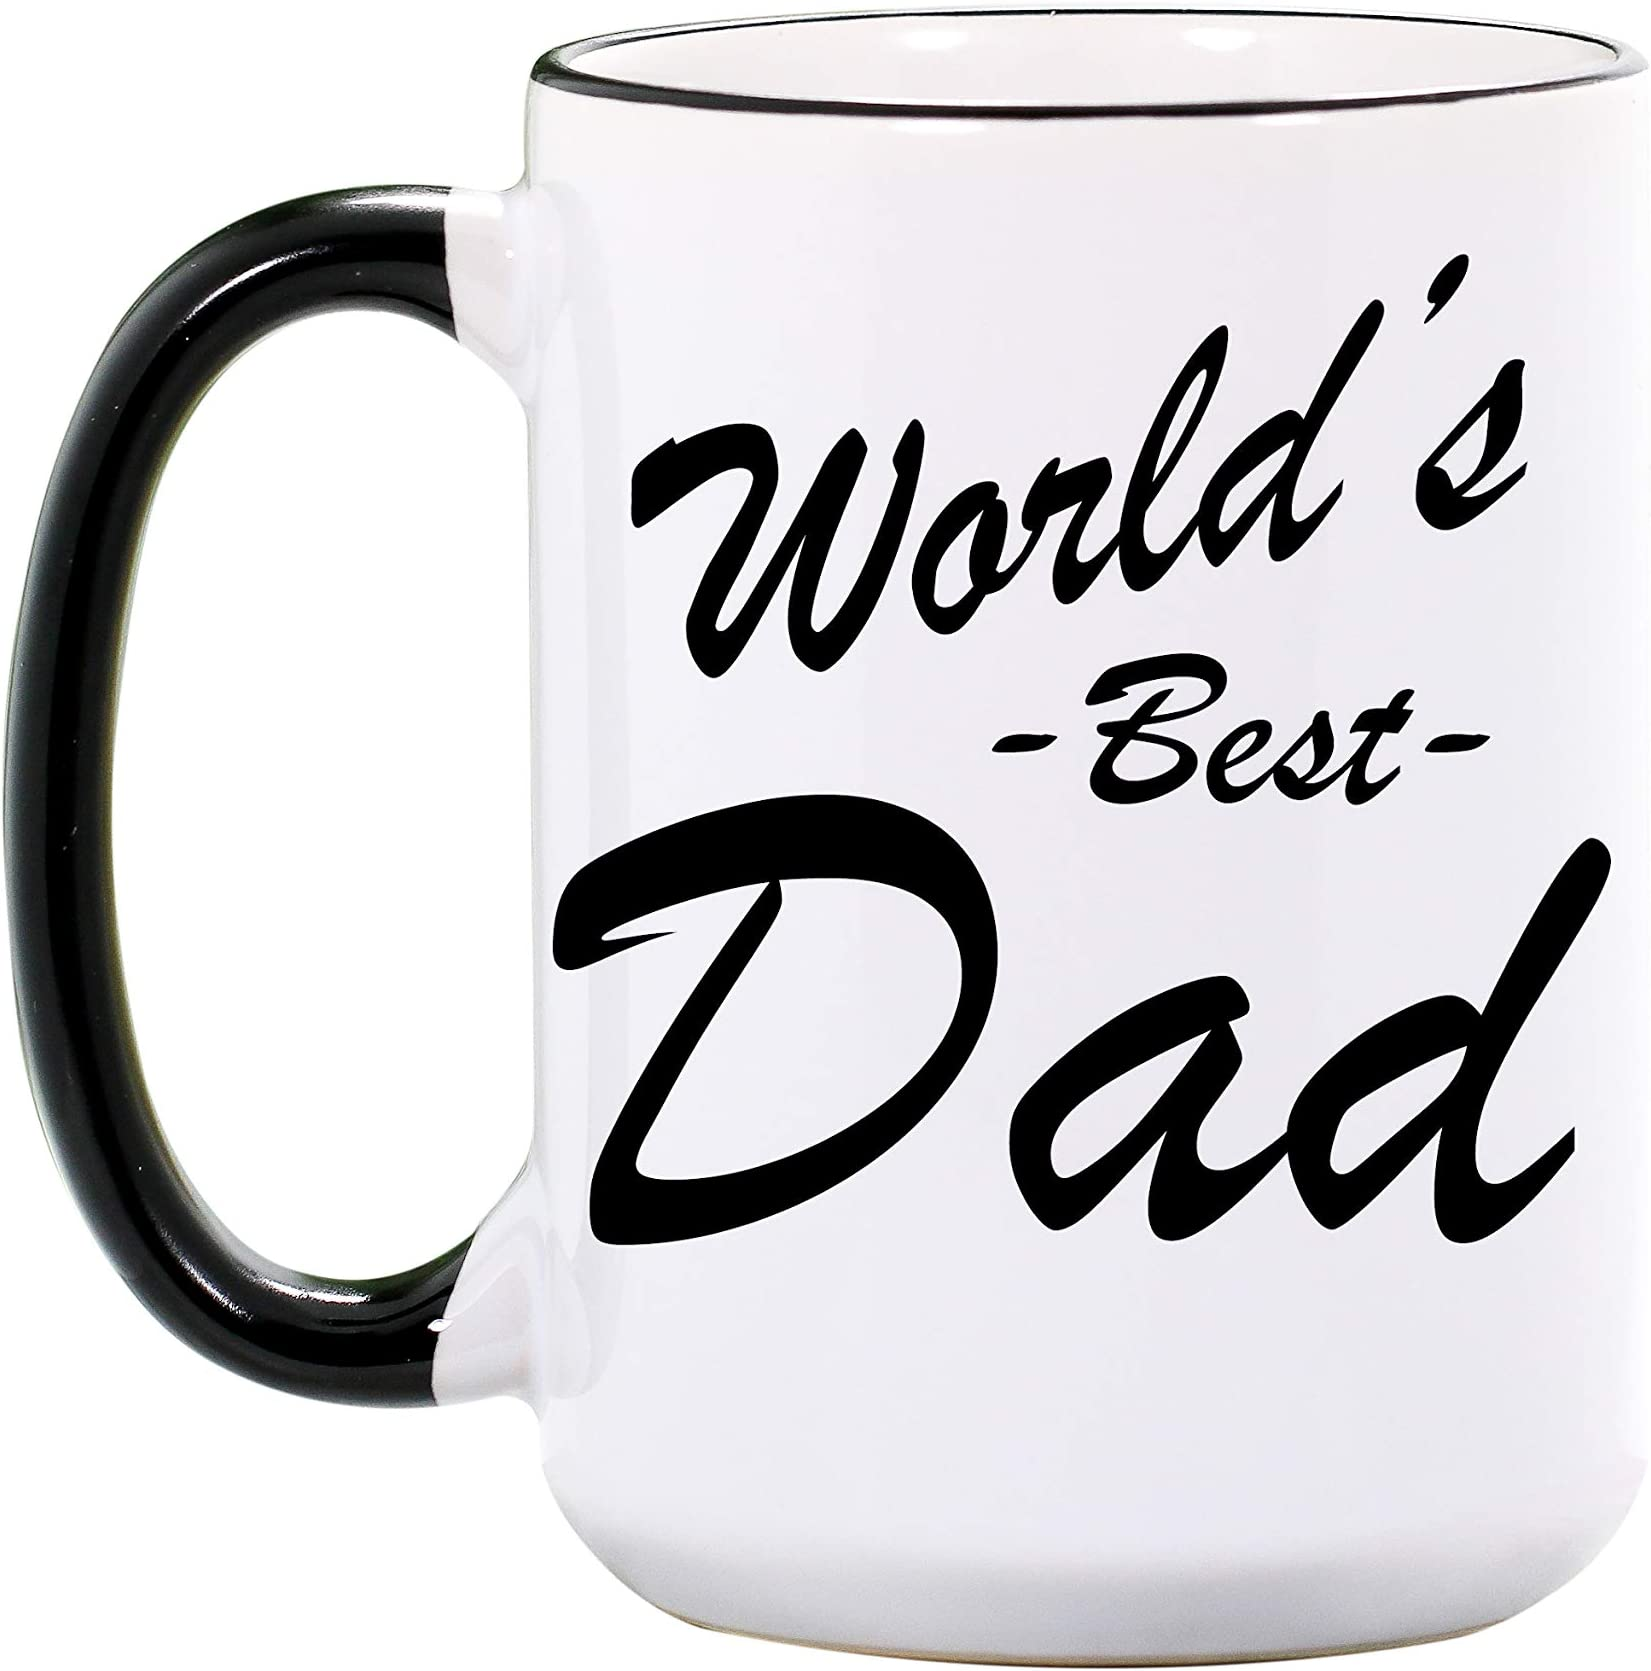 Amazon Com World S Best Dad Mug Large Ceramic 15 Oz Or 11 Oz Ceramic Cup Fathers Day Mugs Dad Gifts For Dads Worlds Best Dad Coffee Cups Dishwasher